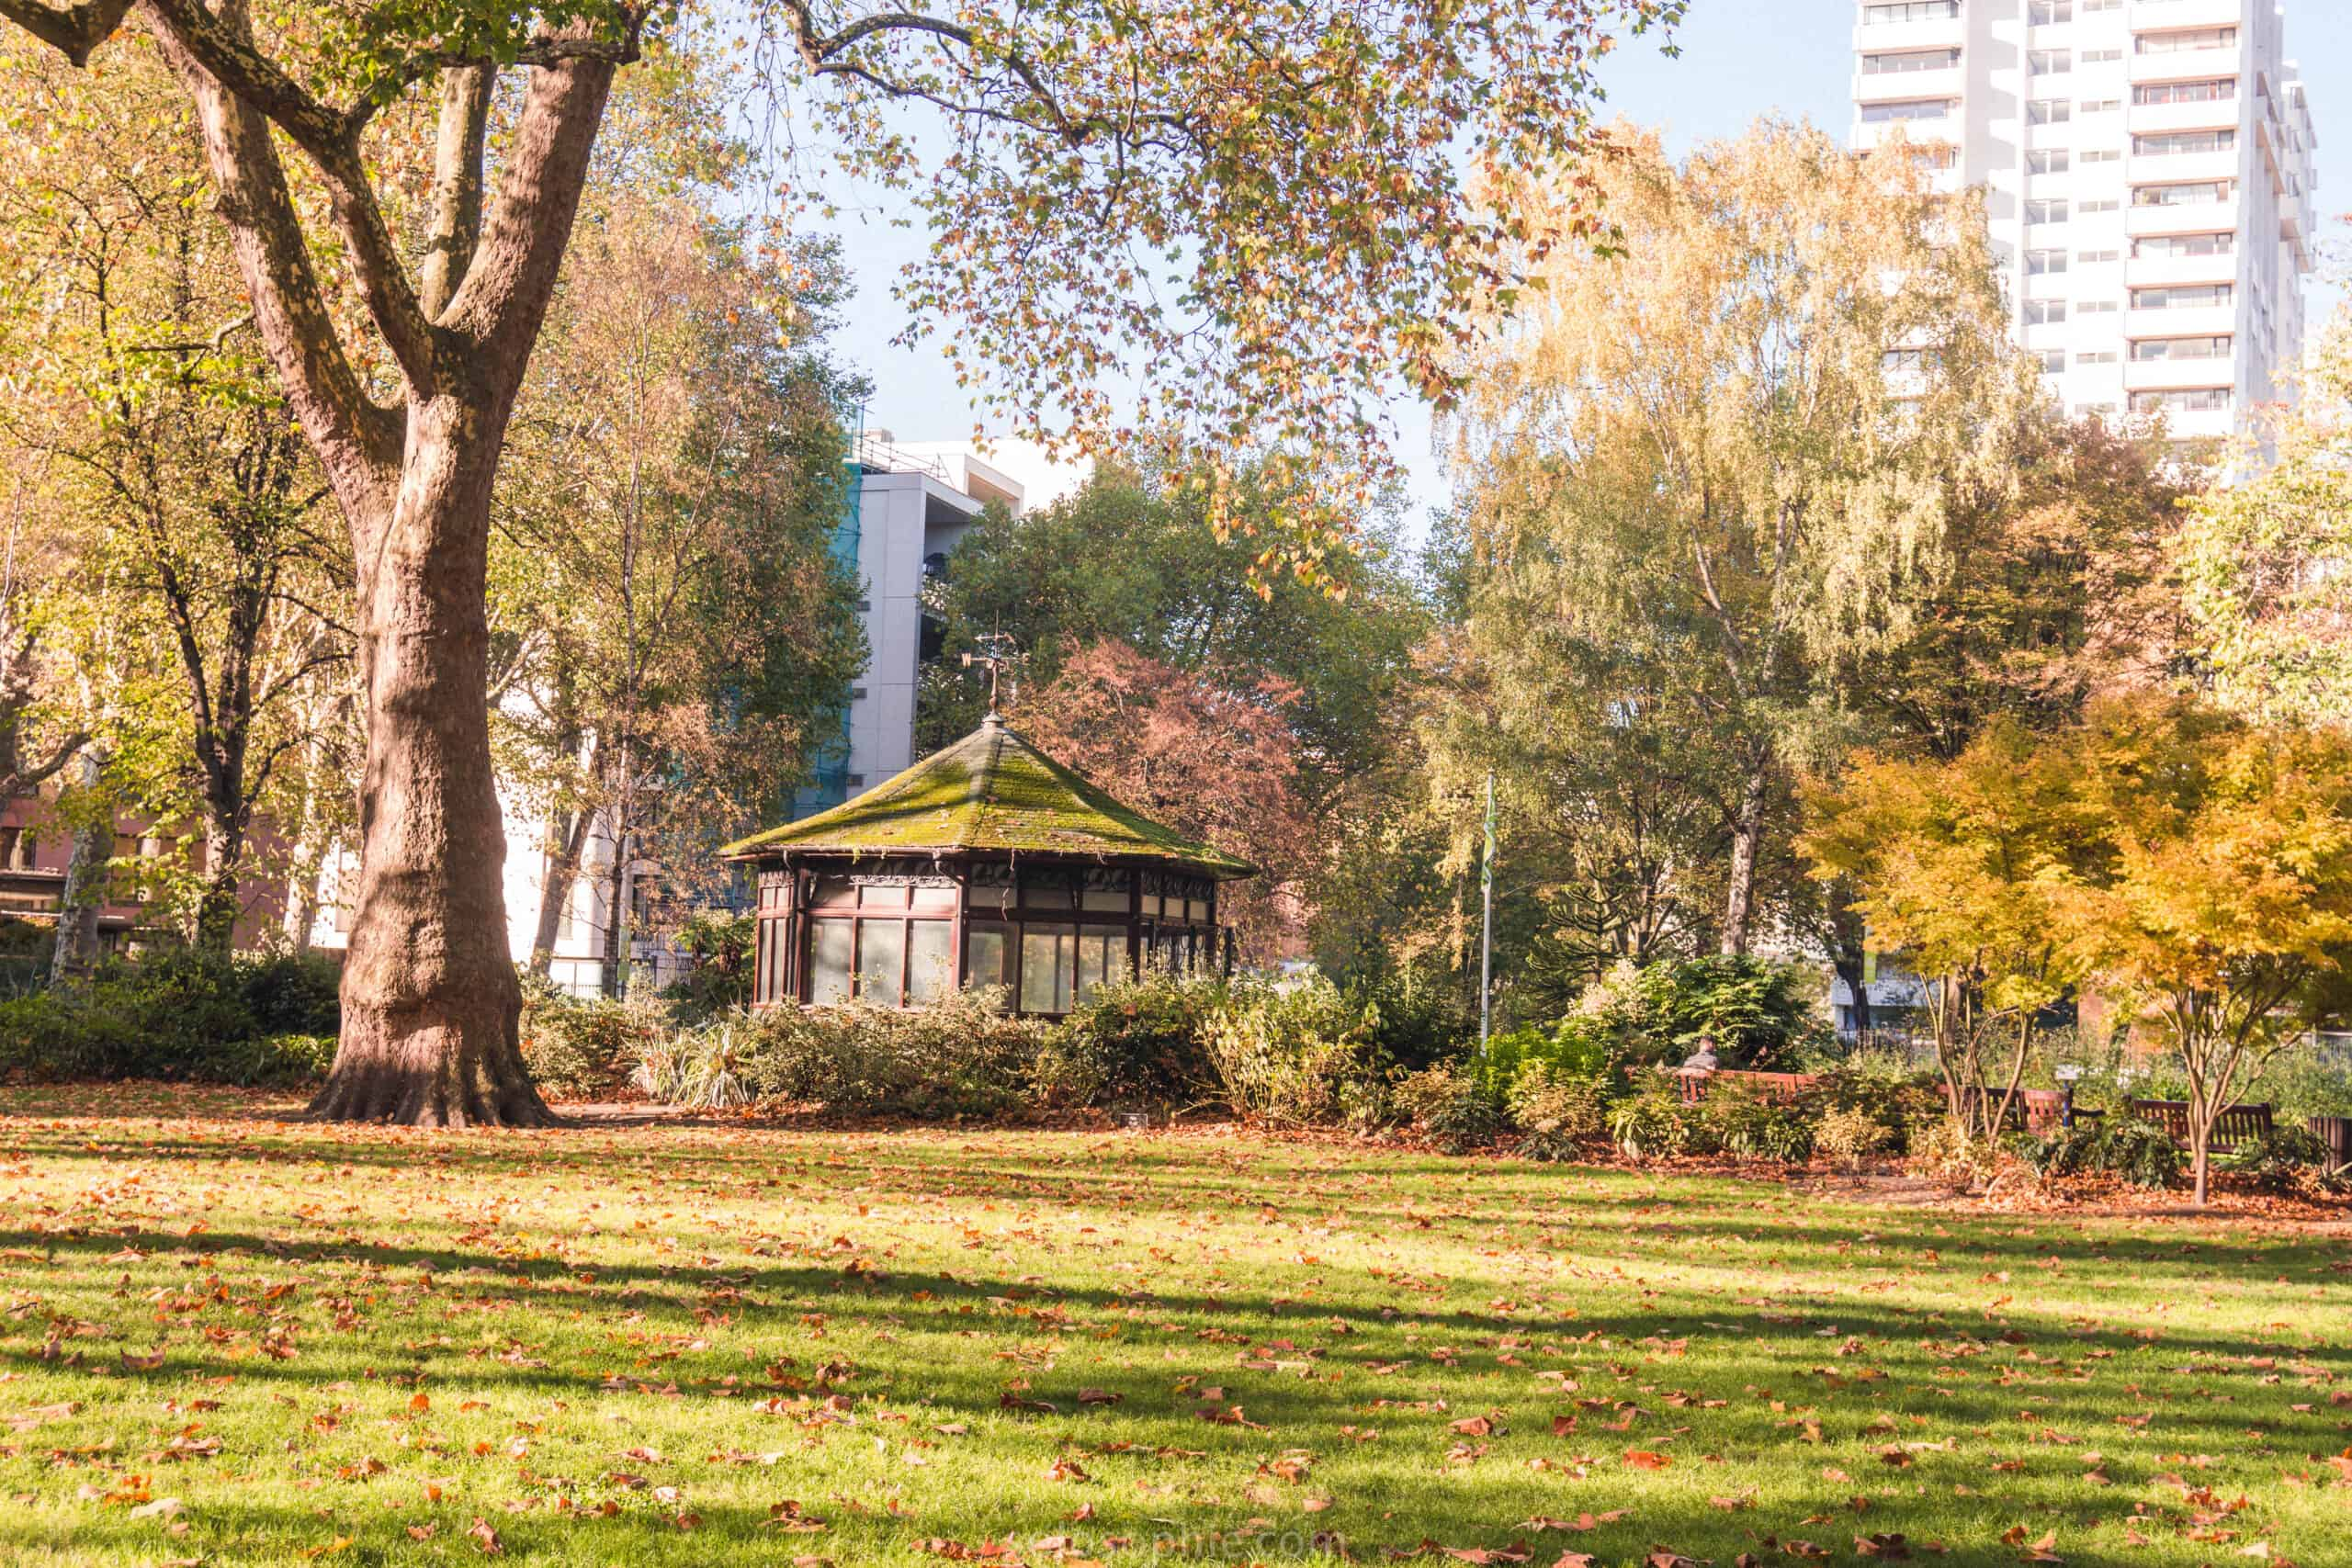 Paddington Street Gardens: a green space and park housed on the site of a former cemetery in Marylebone, London, England